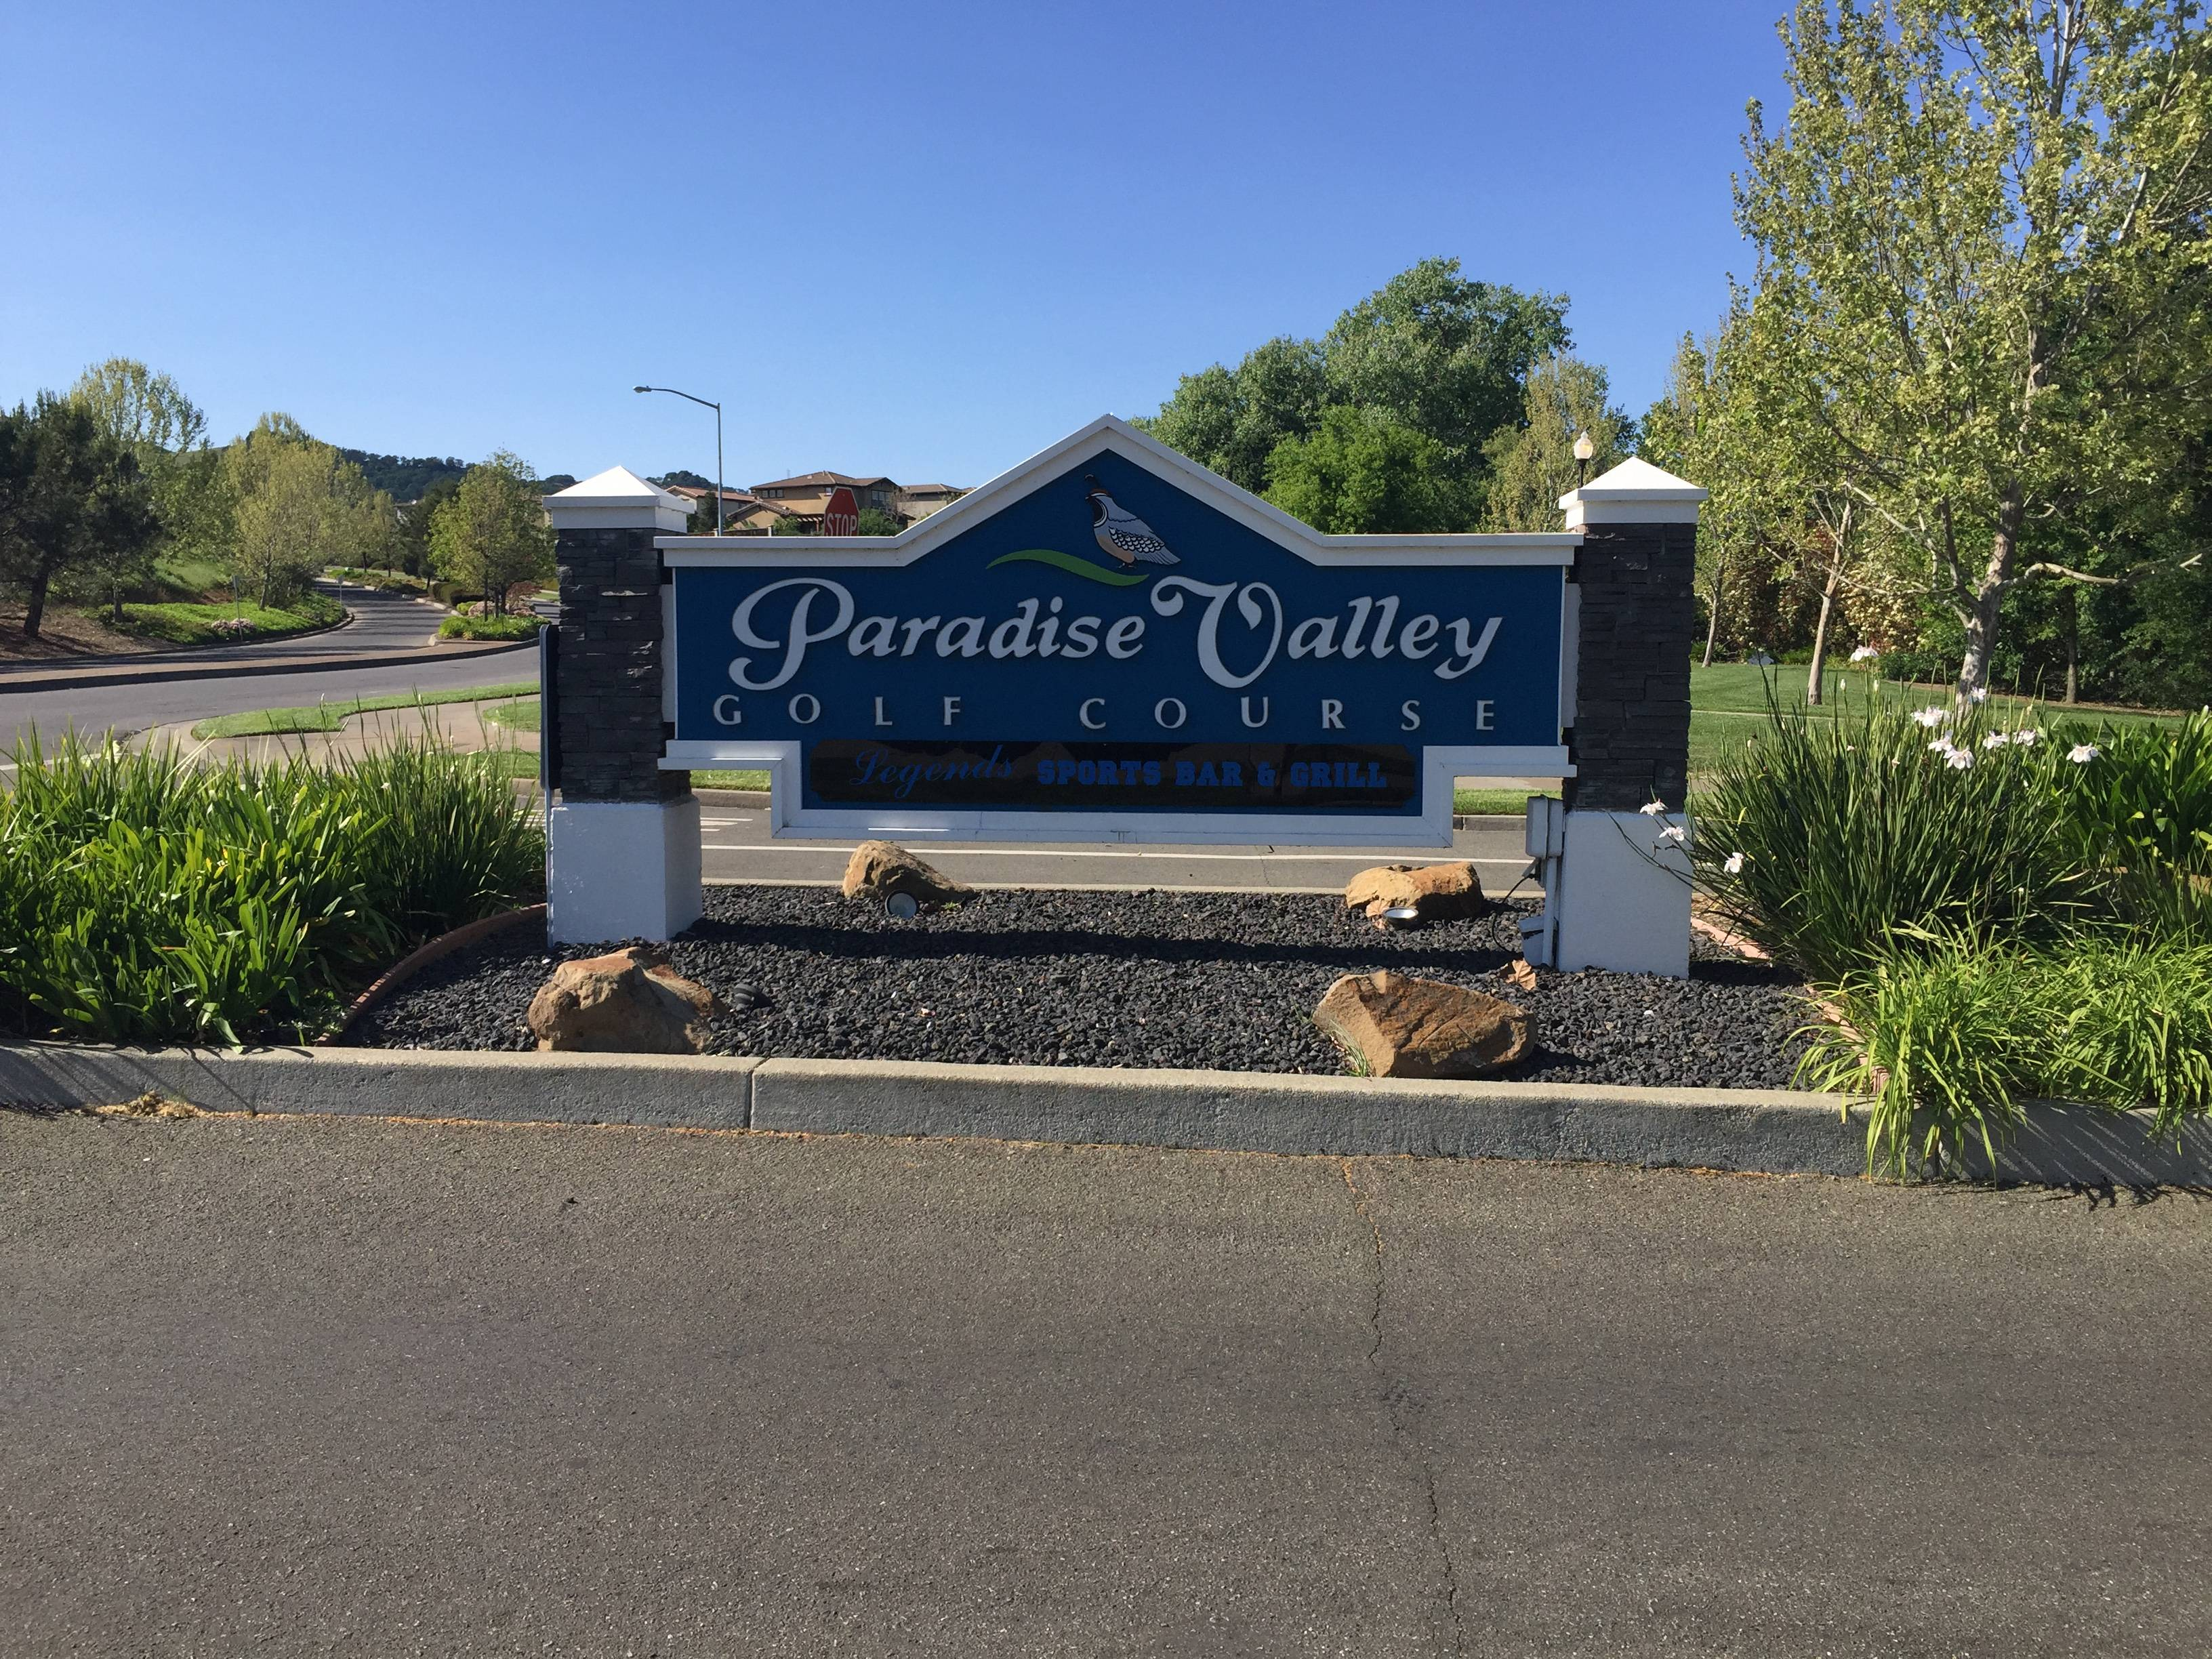 Homes for sale near Paradise Valley golf course in Fair